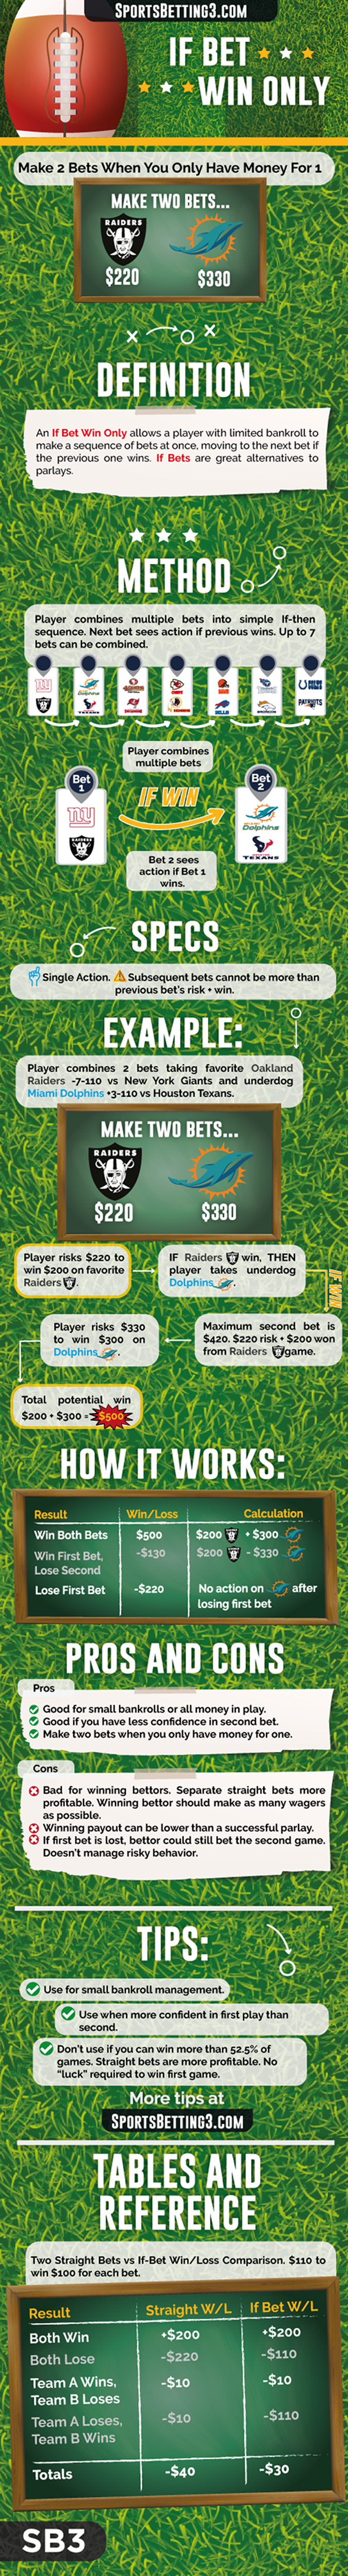 If Bet Win Only Image SportsBetting3.com